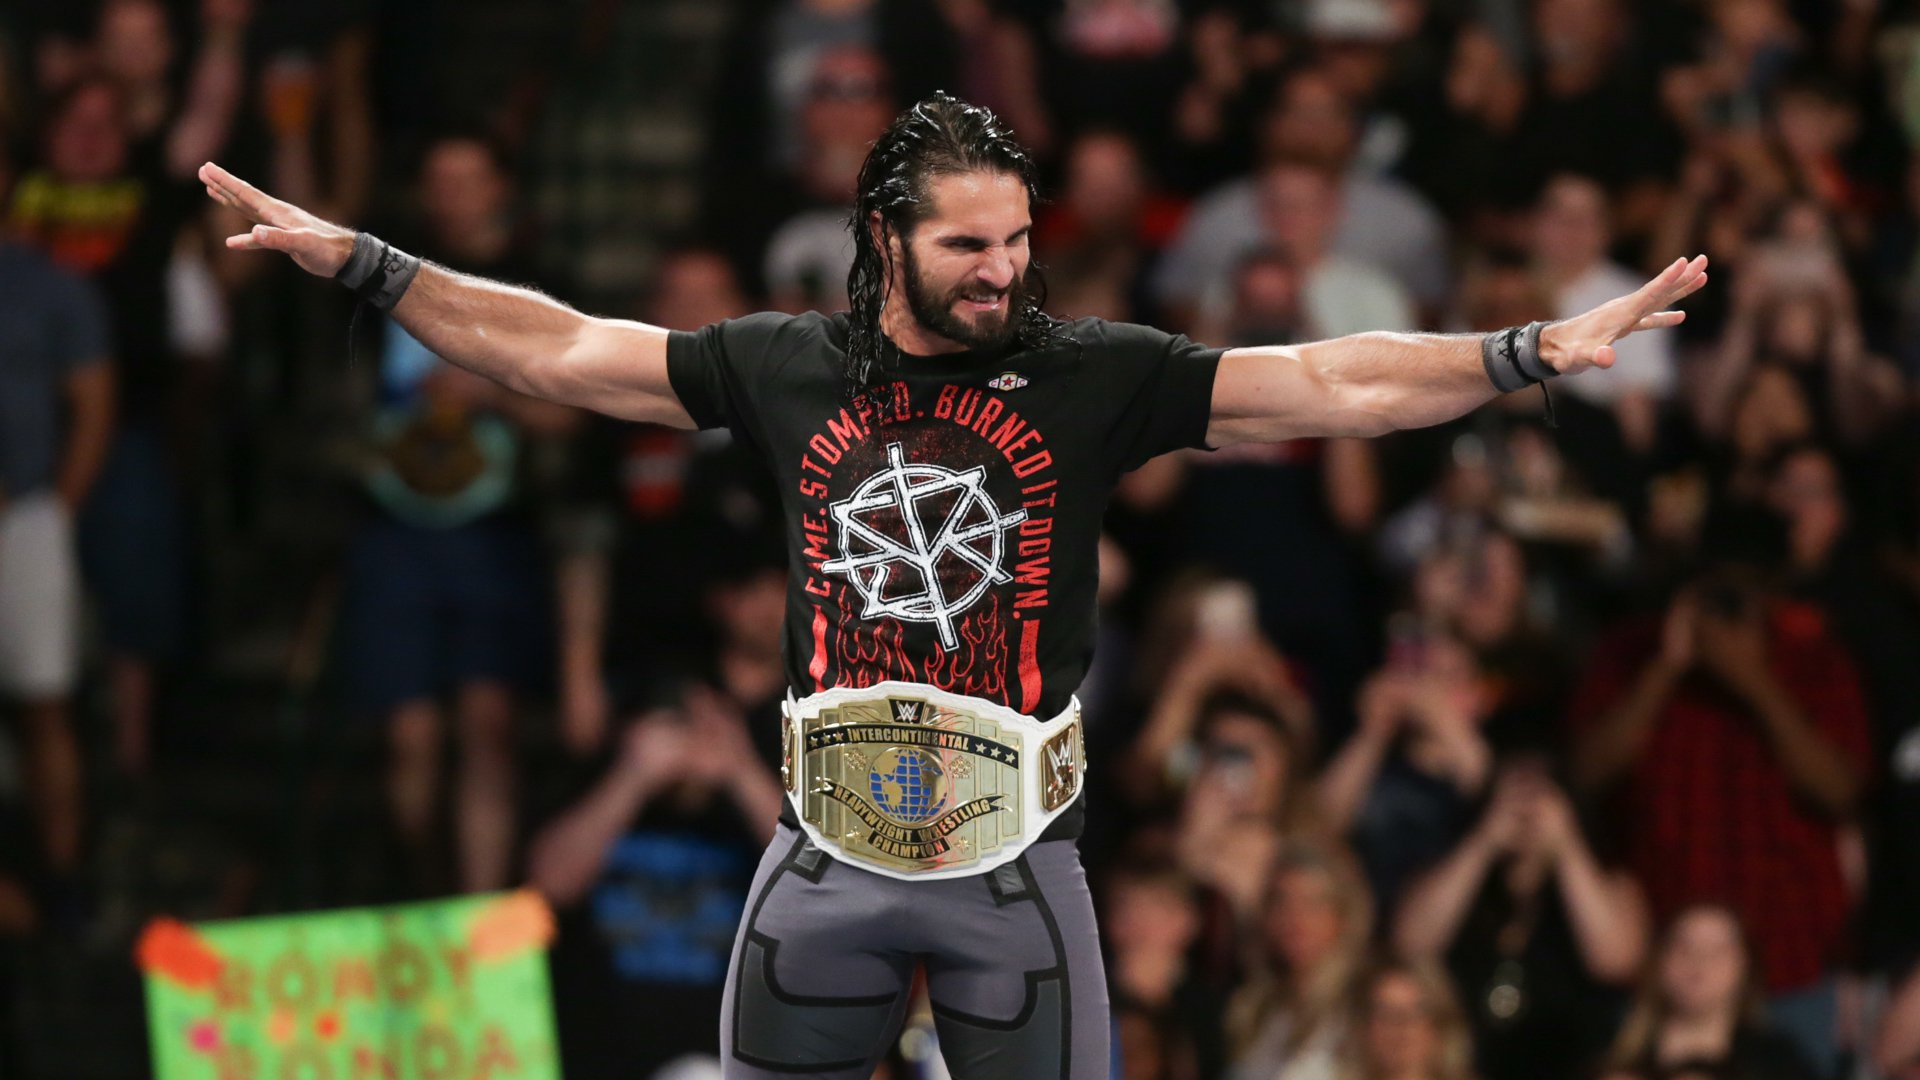 Believe-In-Rollins com | Your Most Dedicated Source for Seth